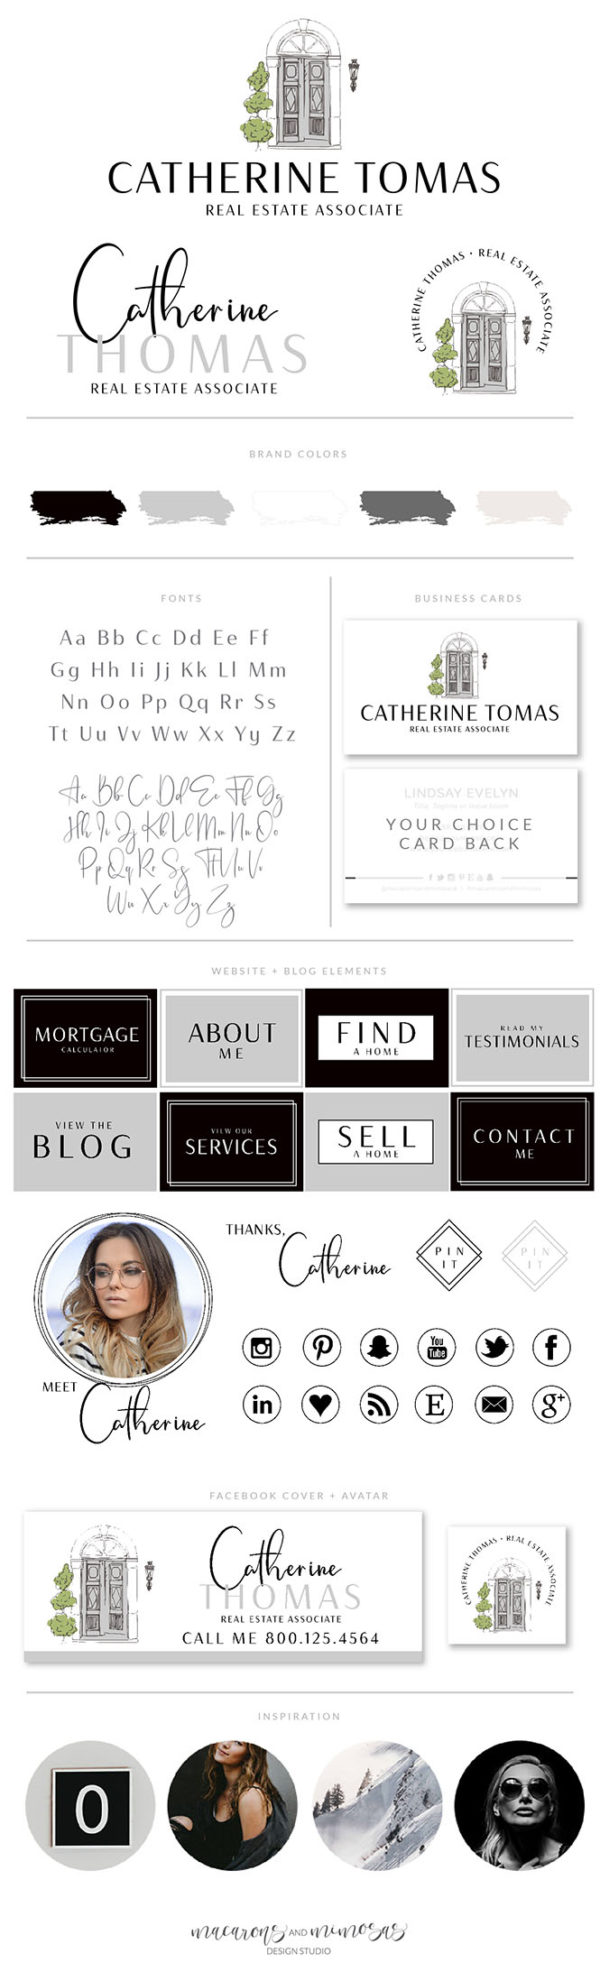 Real Estate Door Logo Template, Real Estate Logo, Realtor Logo, House logo watermark, Realtor Marketing Package for Brokers and Associates